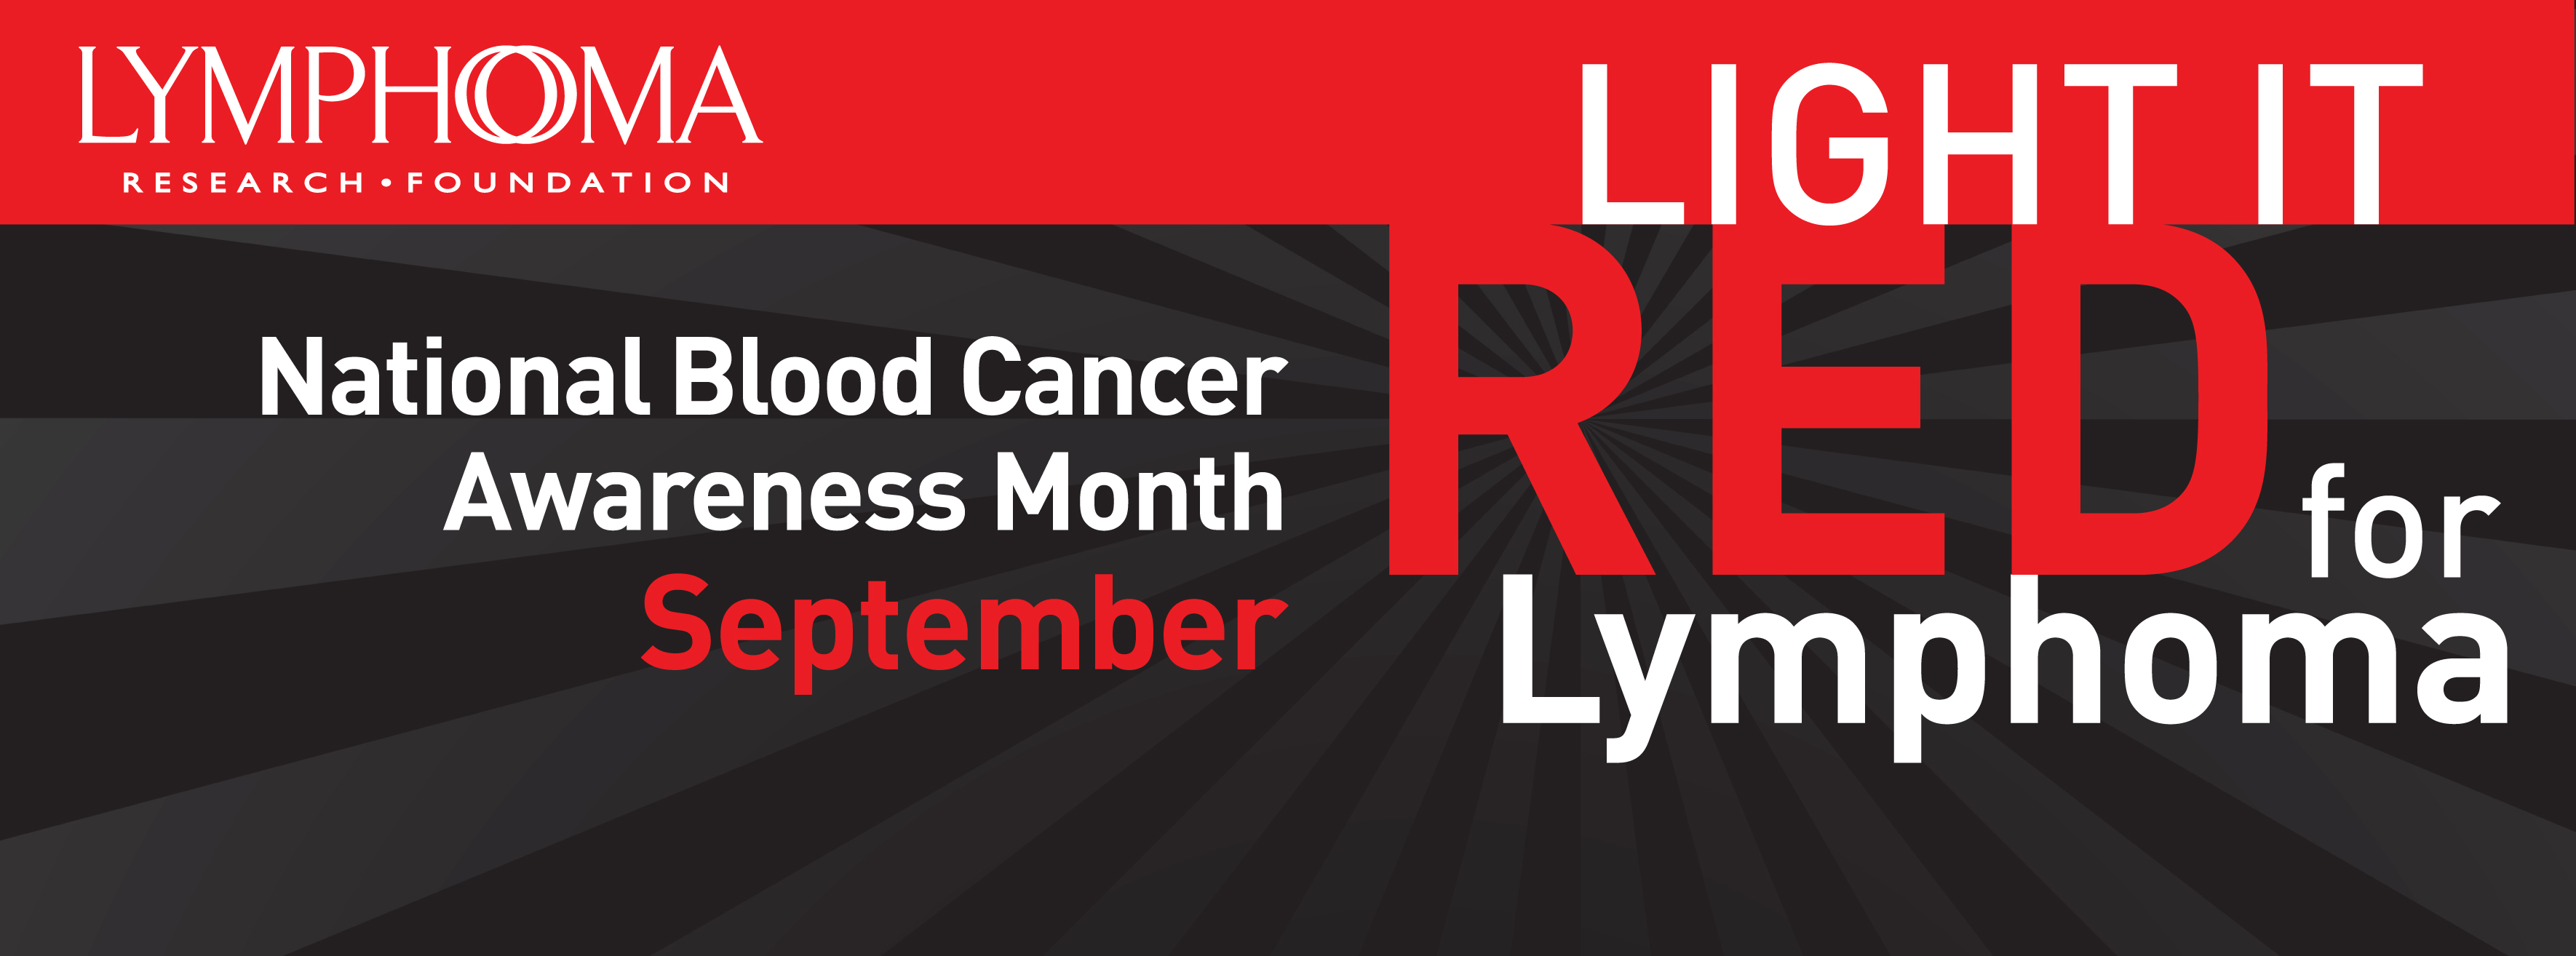 Lymphoma Research Foundation Recognizes Blood Cancer Awareness Month With Light it Red for Lymphoma Campaign